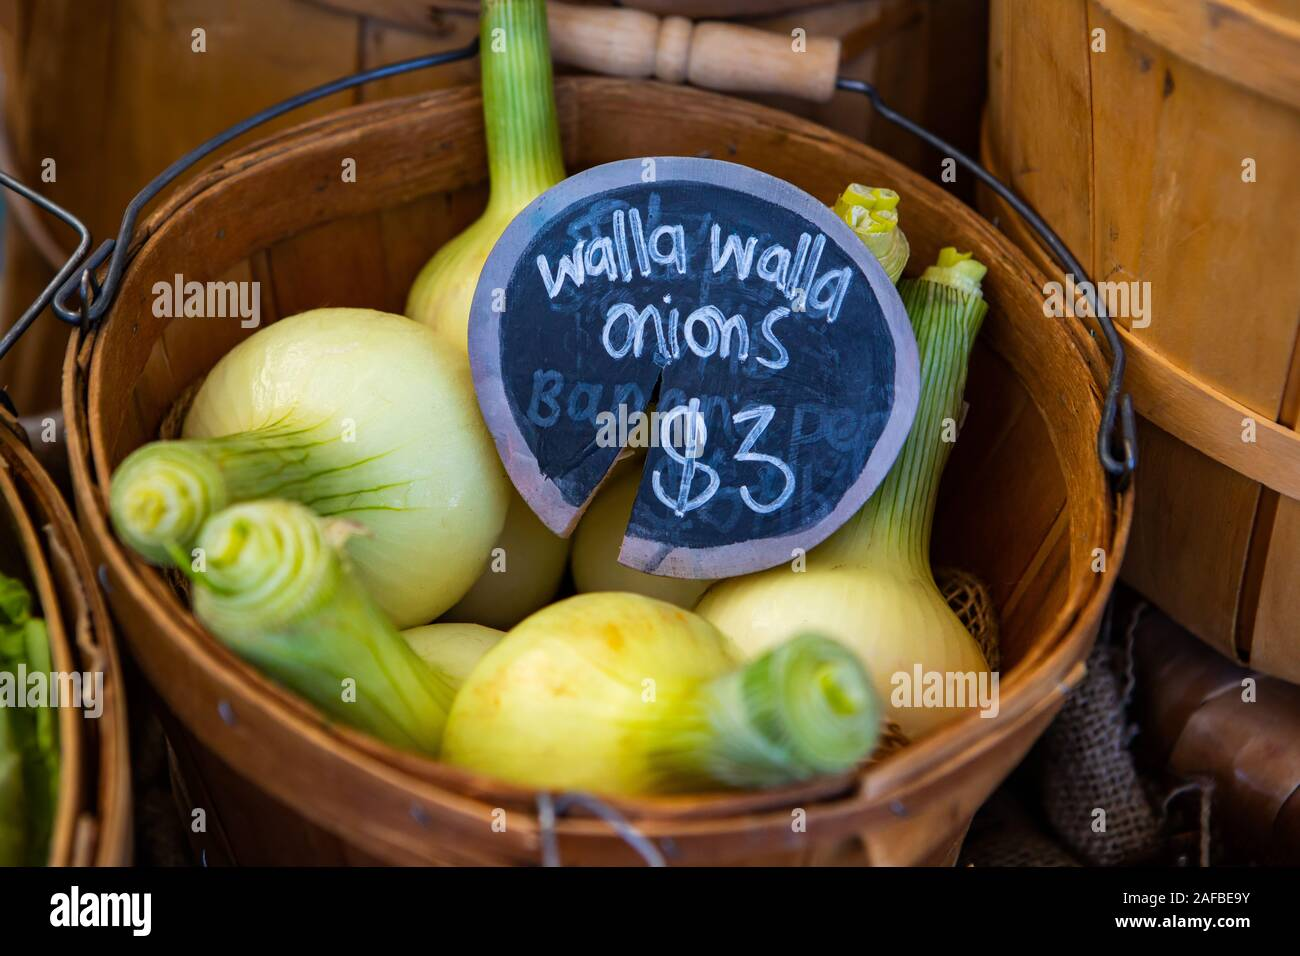 A closeup view of traditional wooden pales filled with walla walla onions, a variety of sweet onion, and a price tag during a local harvest fair Stock Photo